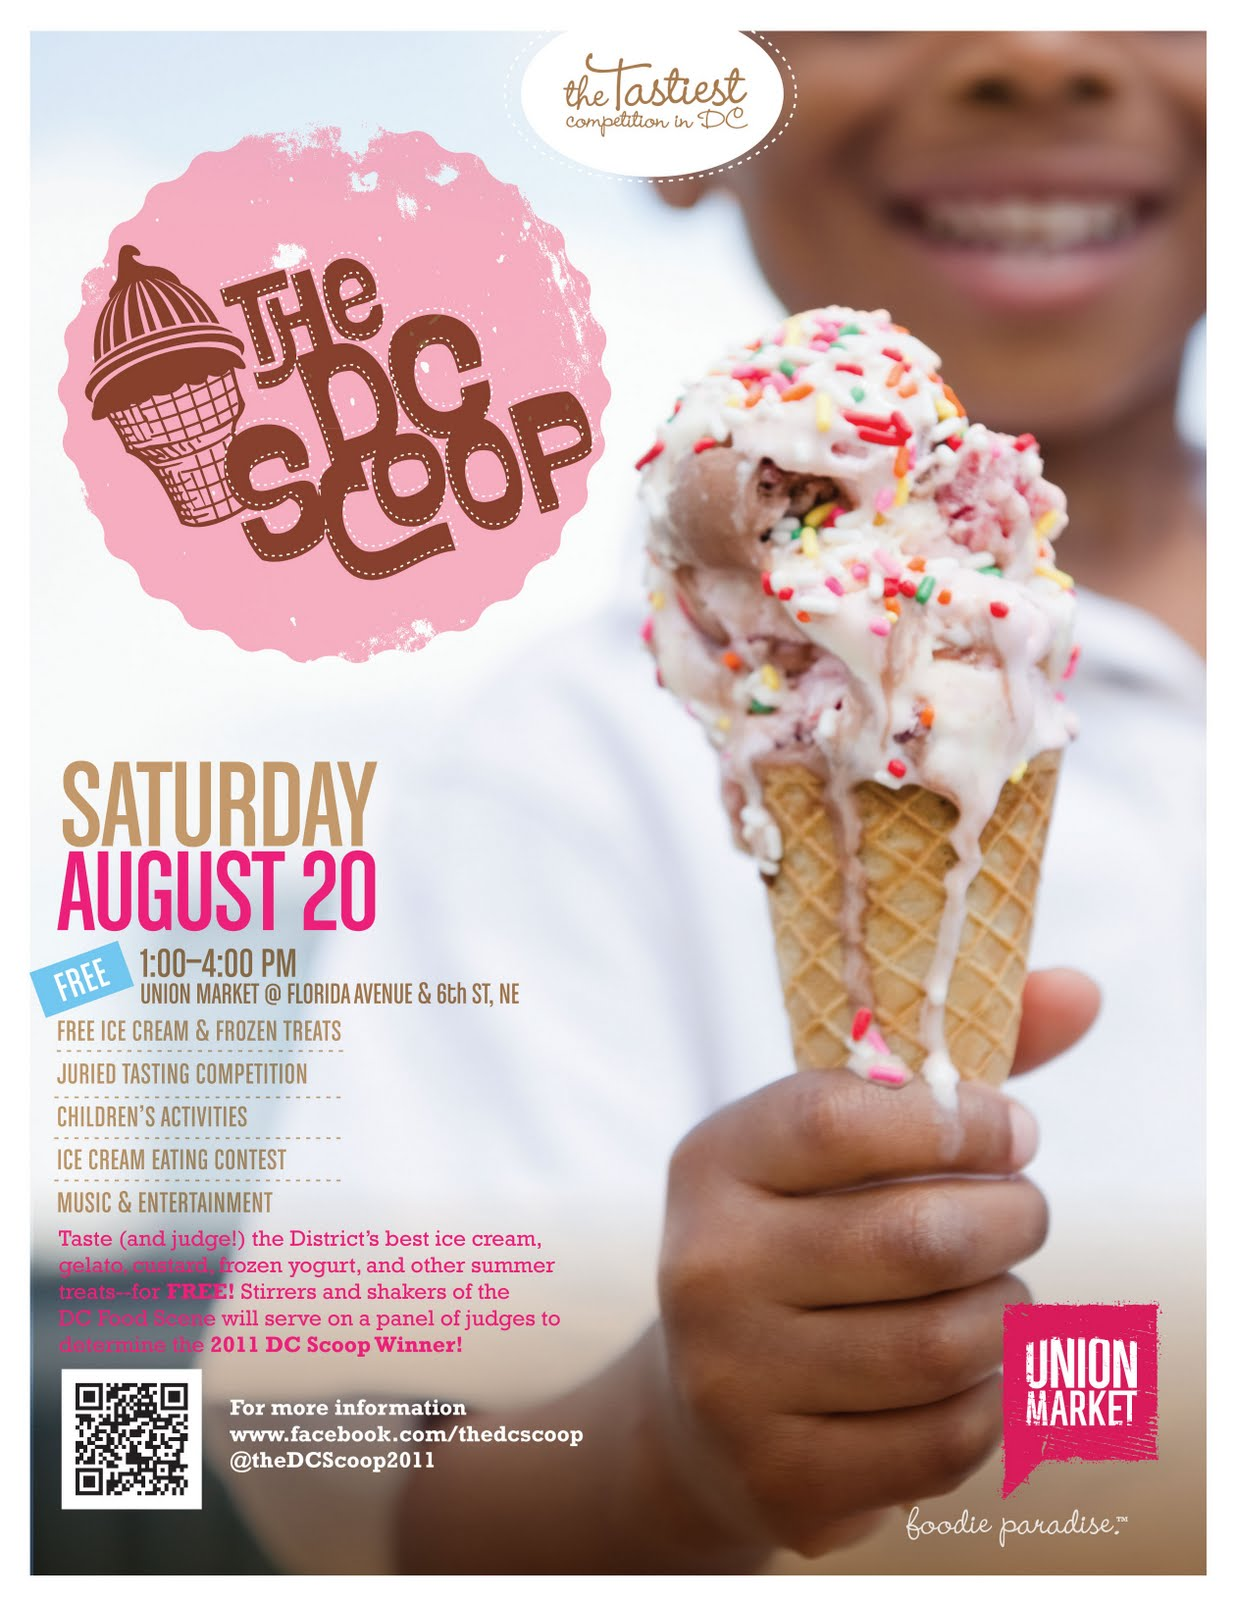 bloomingdale dc scoop free ice cream event at union market on